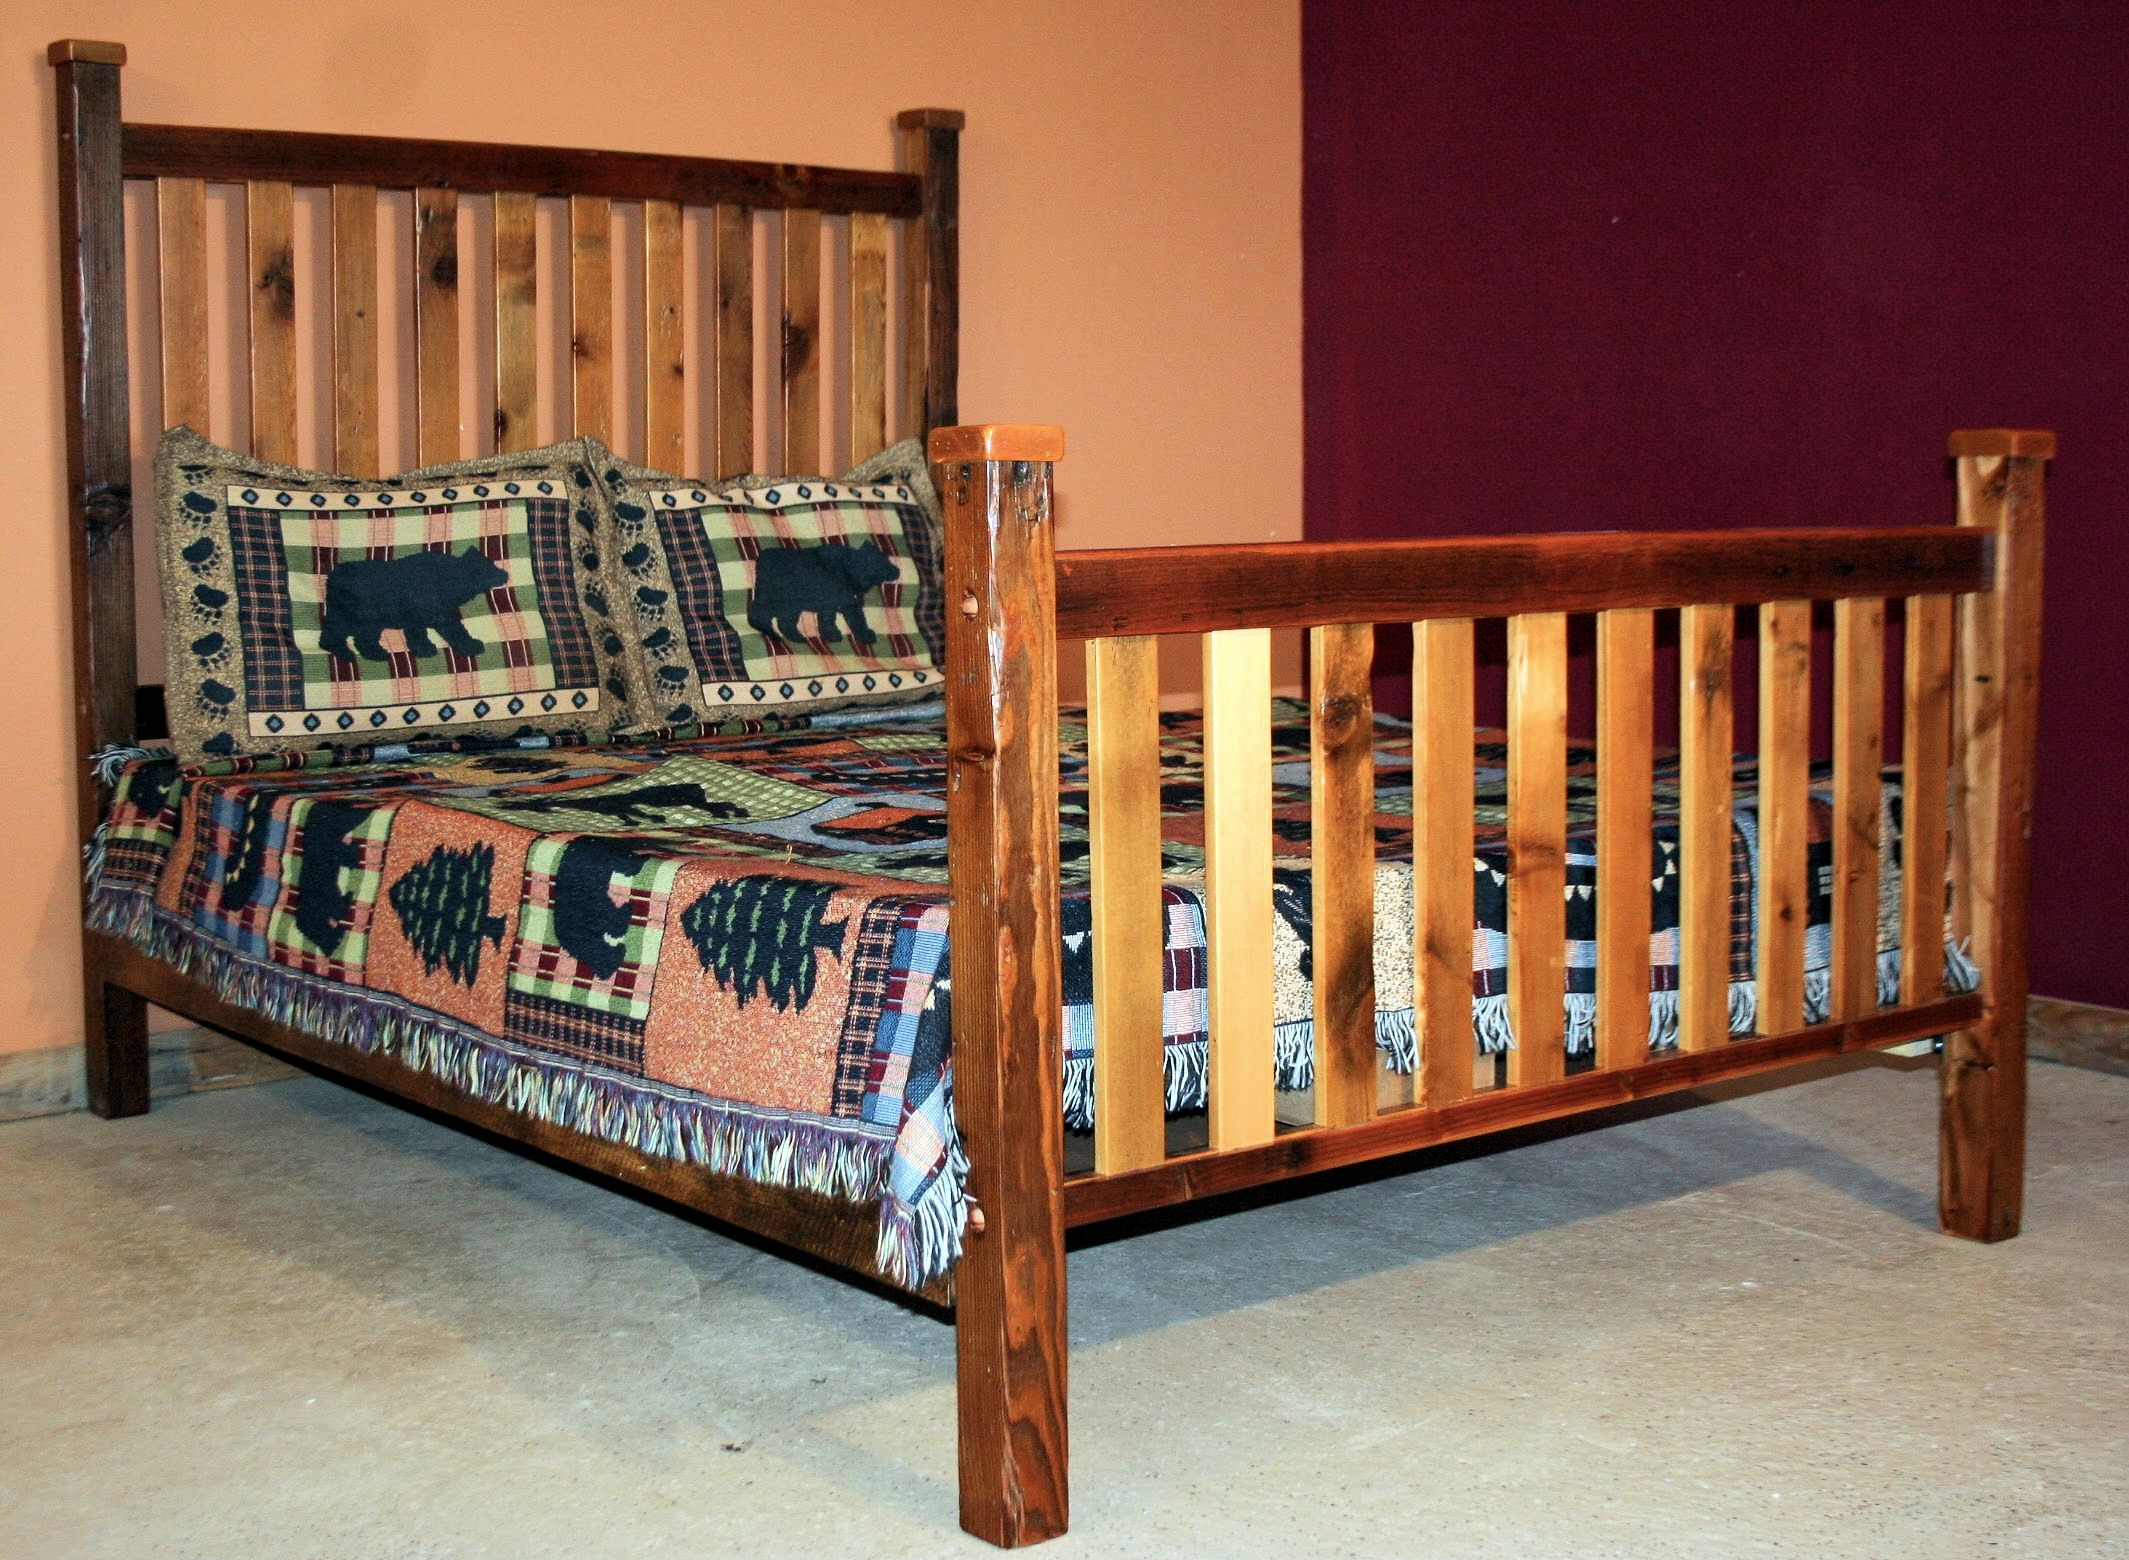 barn-wood-bed-500.jpg